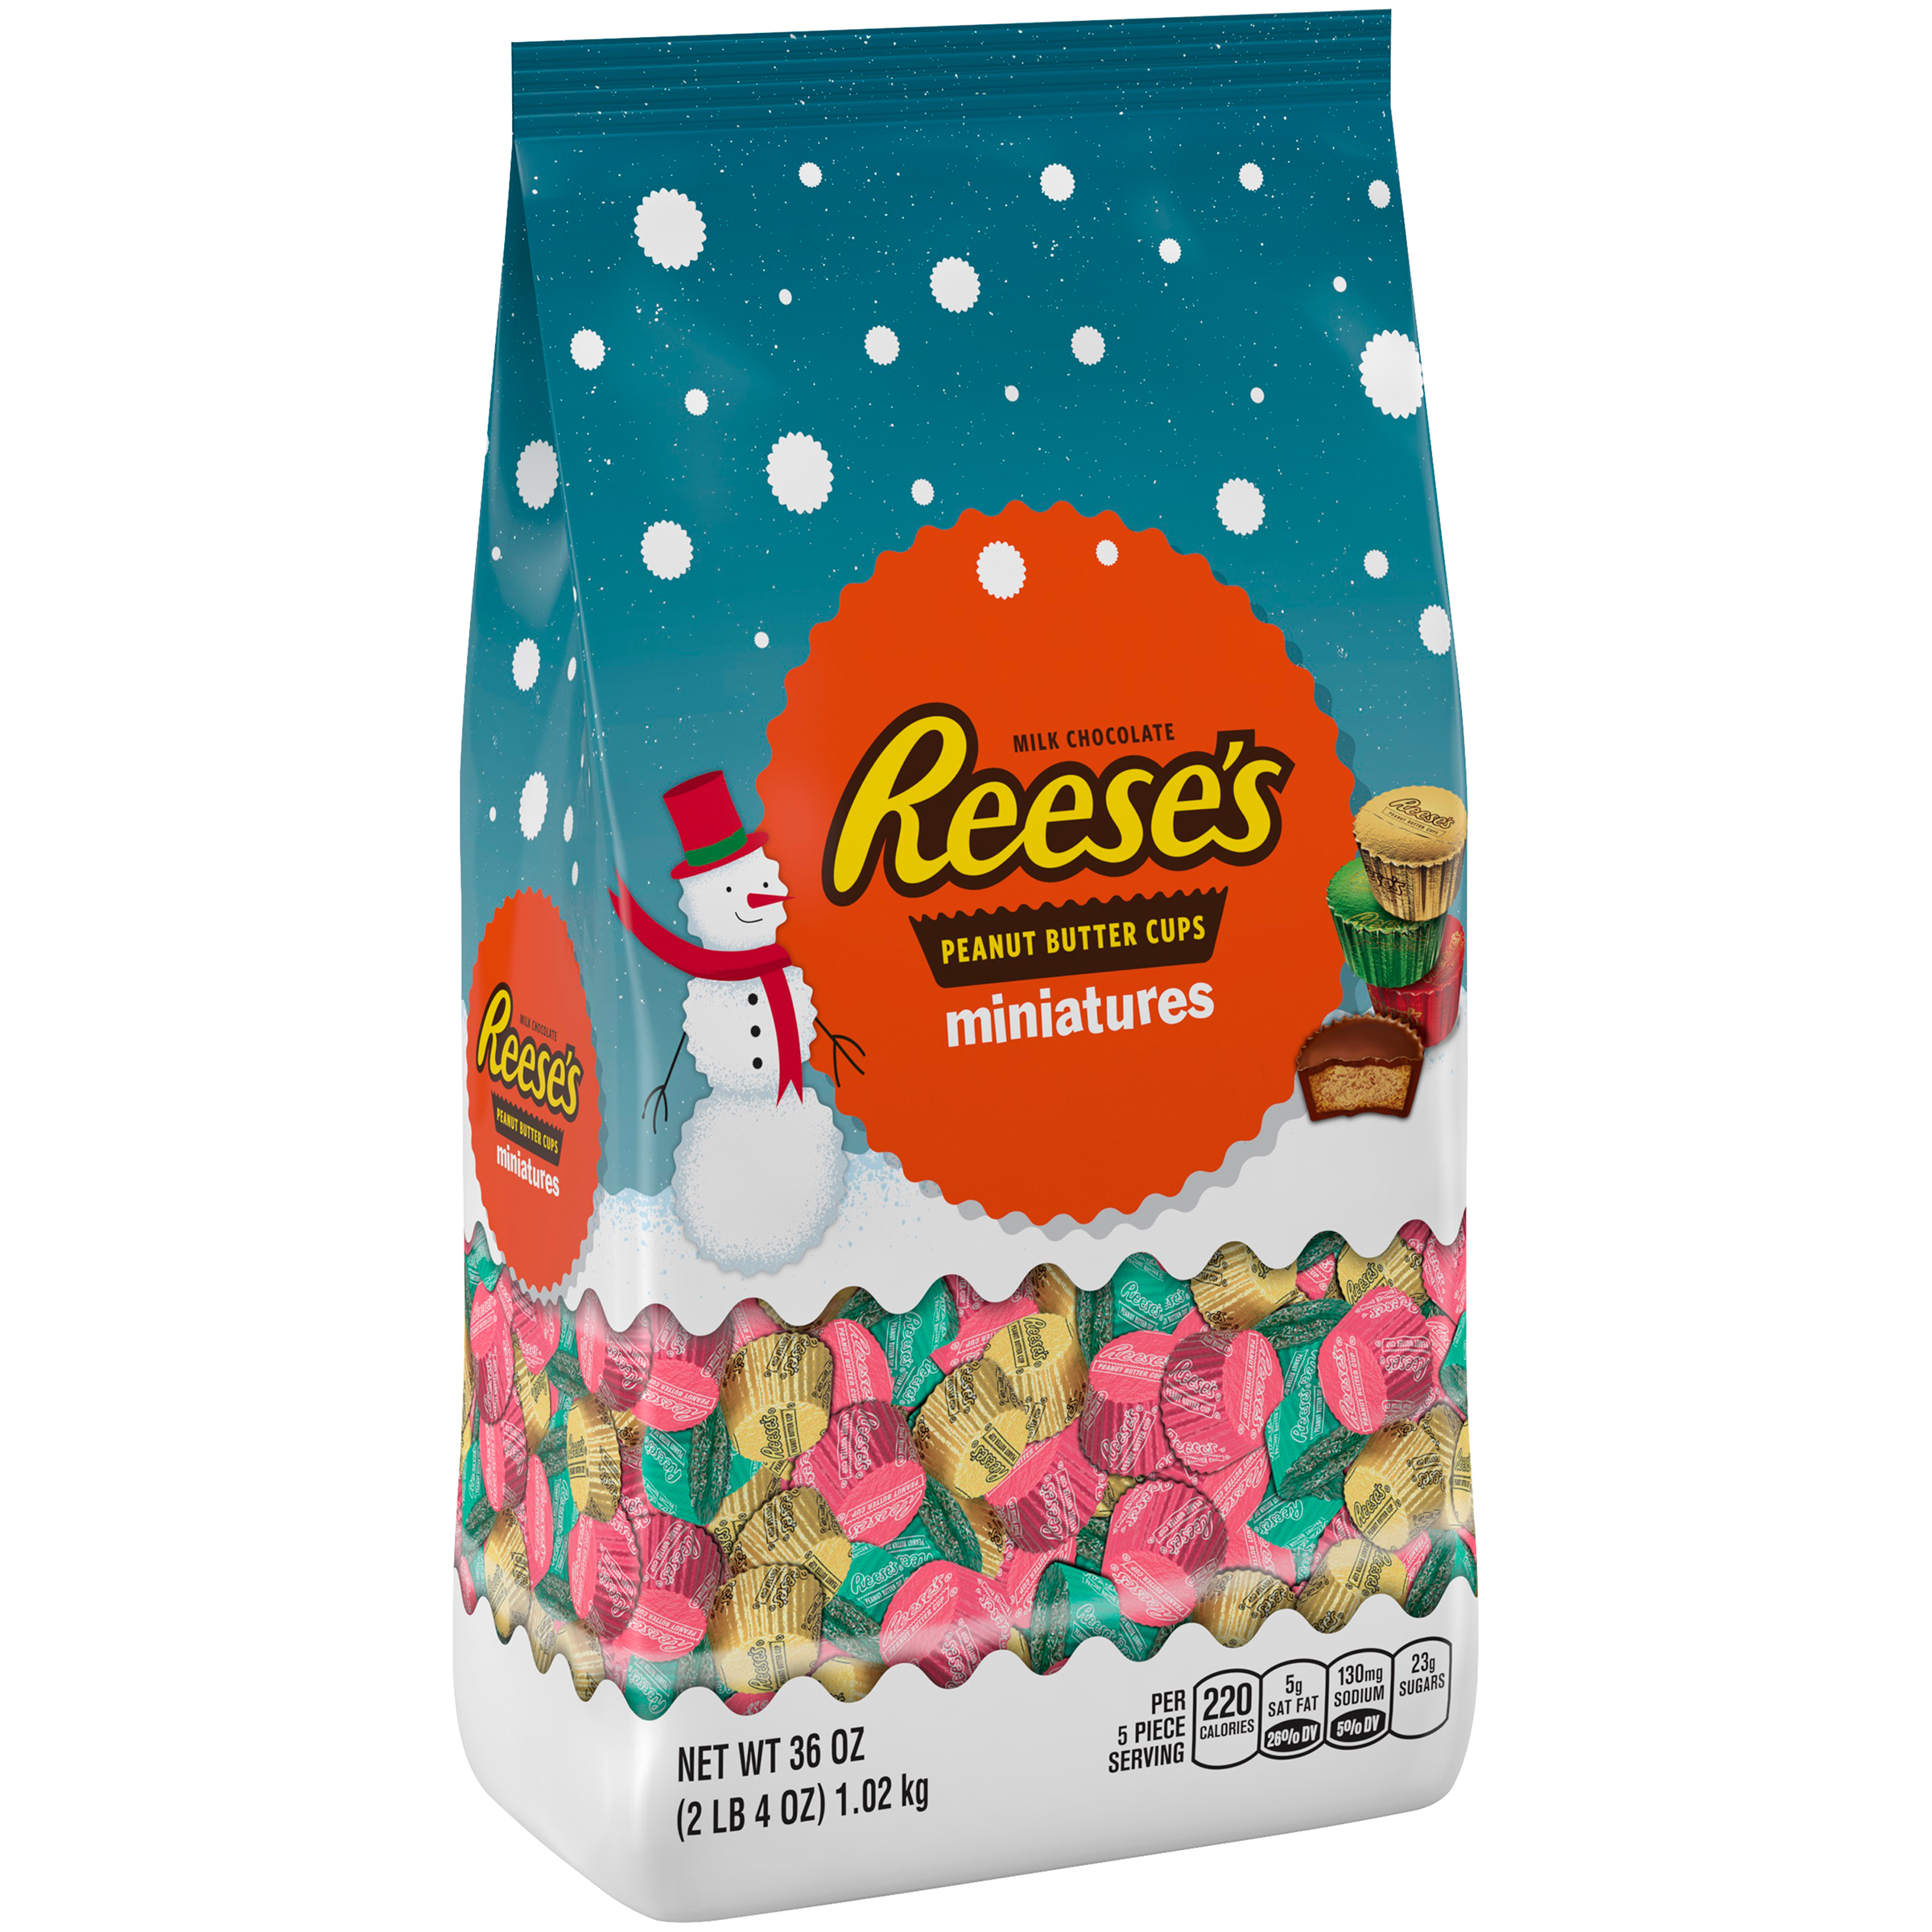 REESE'S Holiday Peanut Butter Cups Miniatures, 36 oz